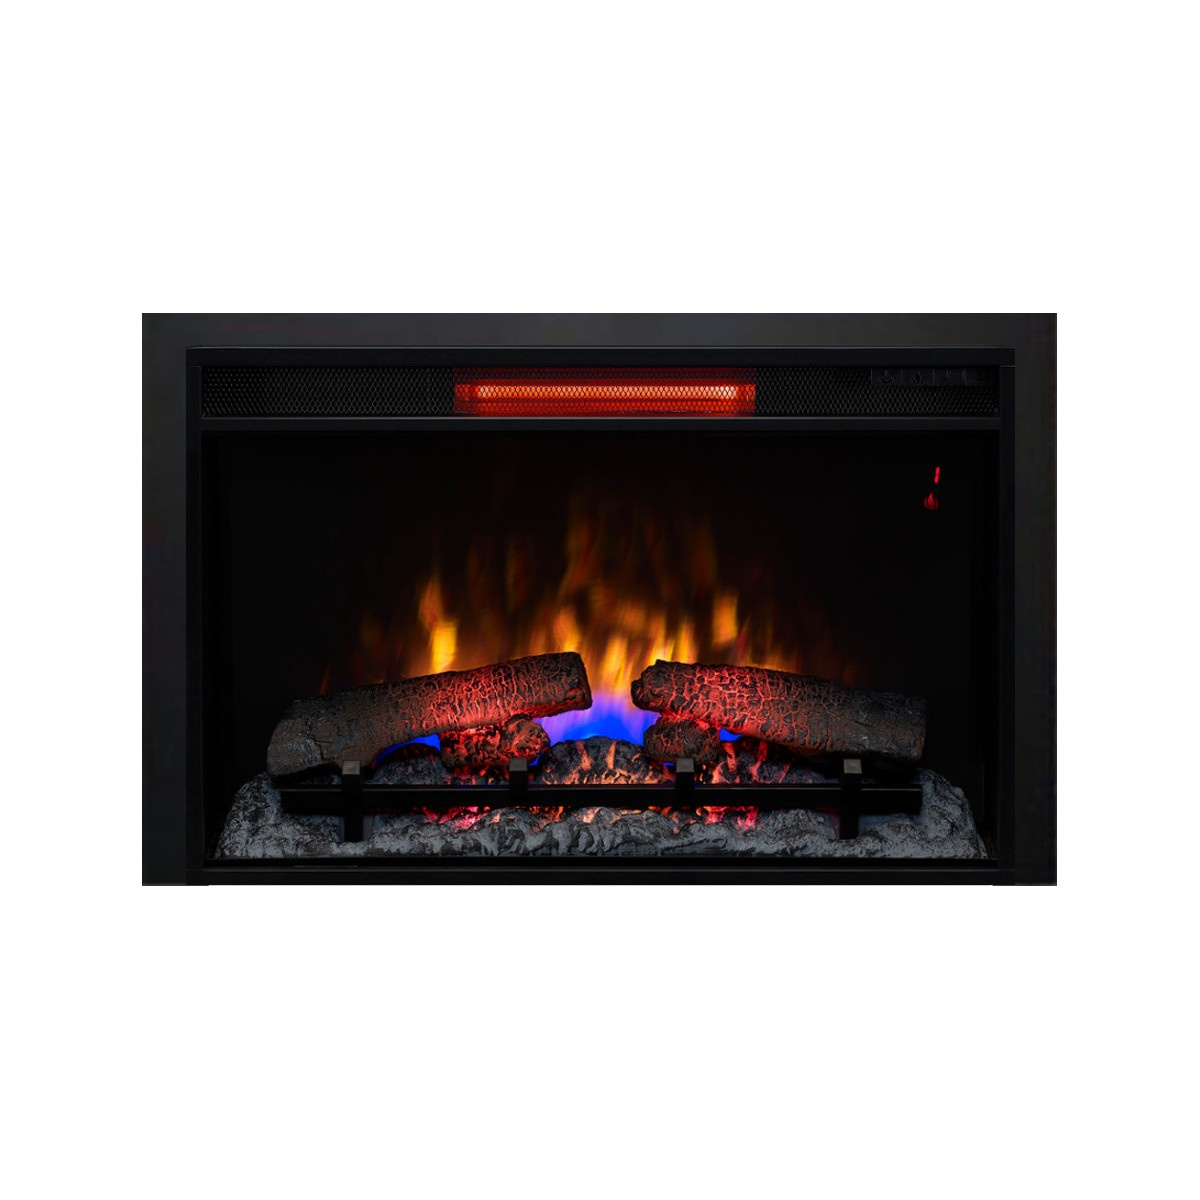 optimyst fireplaces stockbridge r myst en inserts stove electric angle dimplex fireplace sup products opti